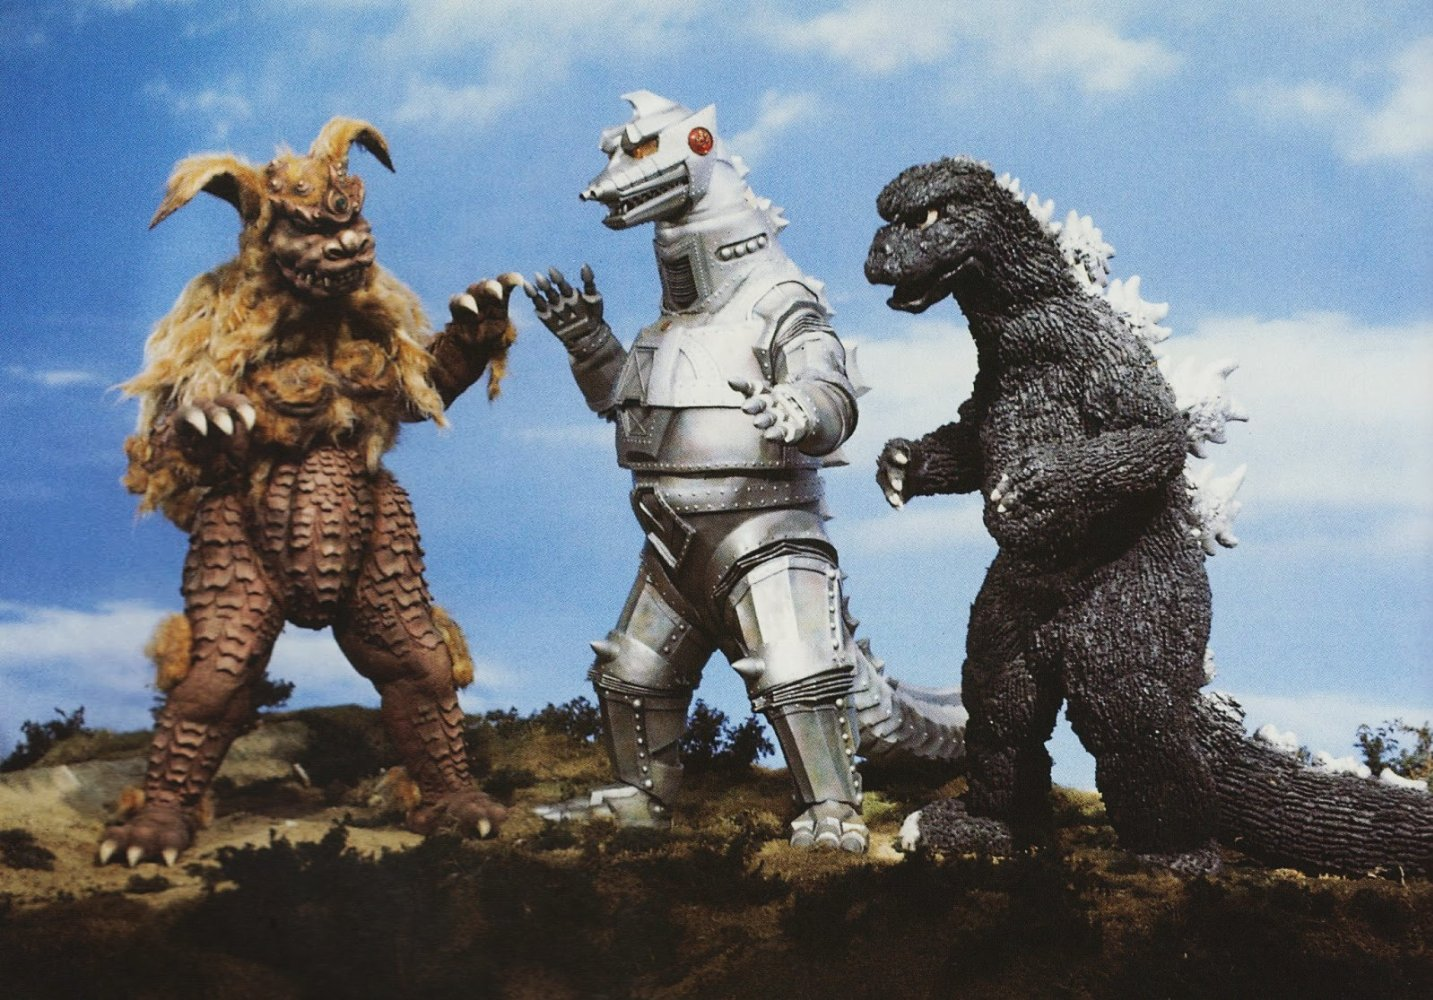 Cosmic Monsters: A Love Letter to Godzilla, Mechagodzilla, and King Caesar